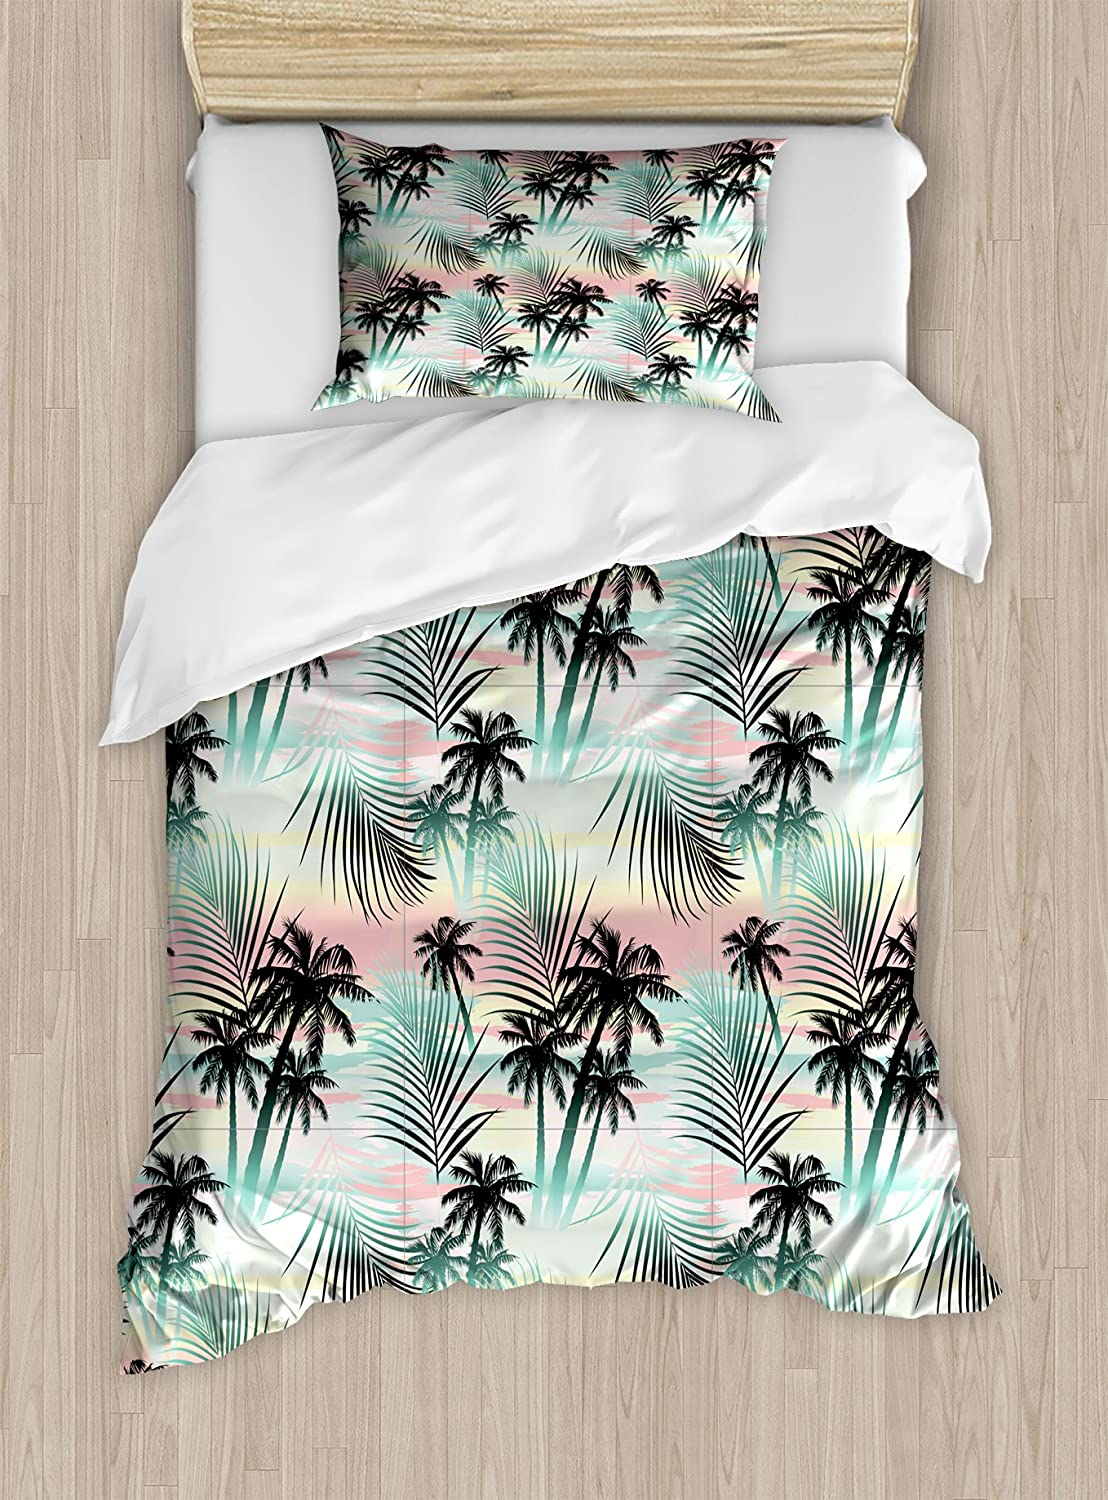 Ambesonne Dragonfly Duvet Cover Set King Size A Decorative 3 Piece Bedding Set With 2 Pillow